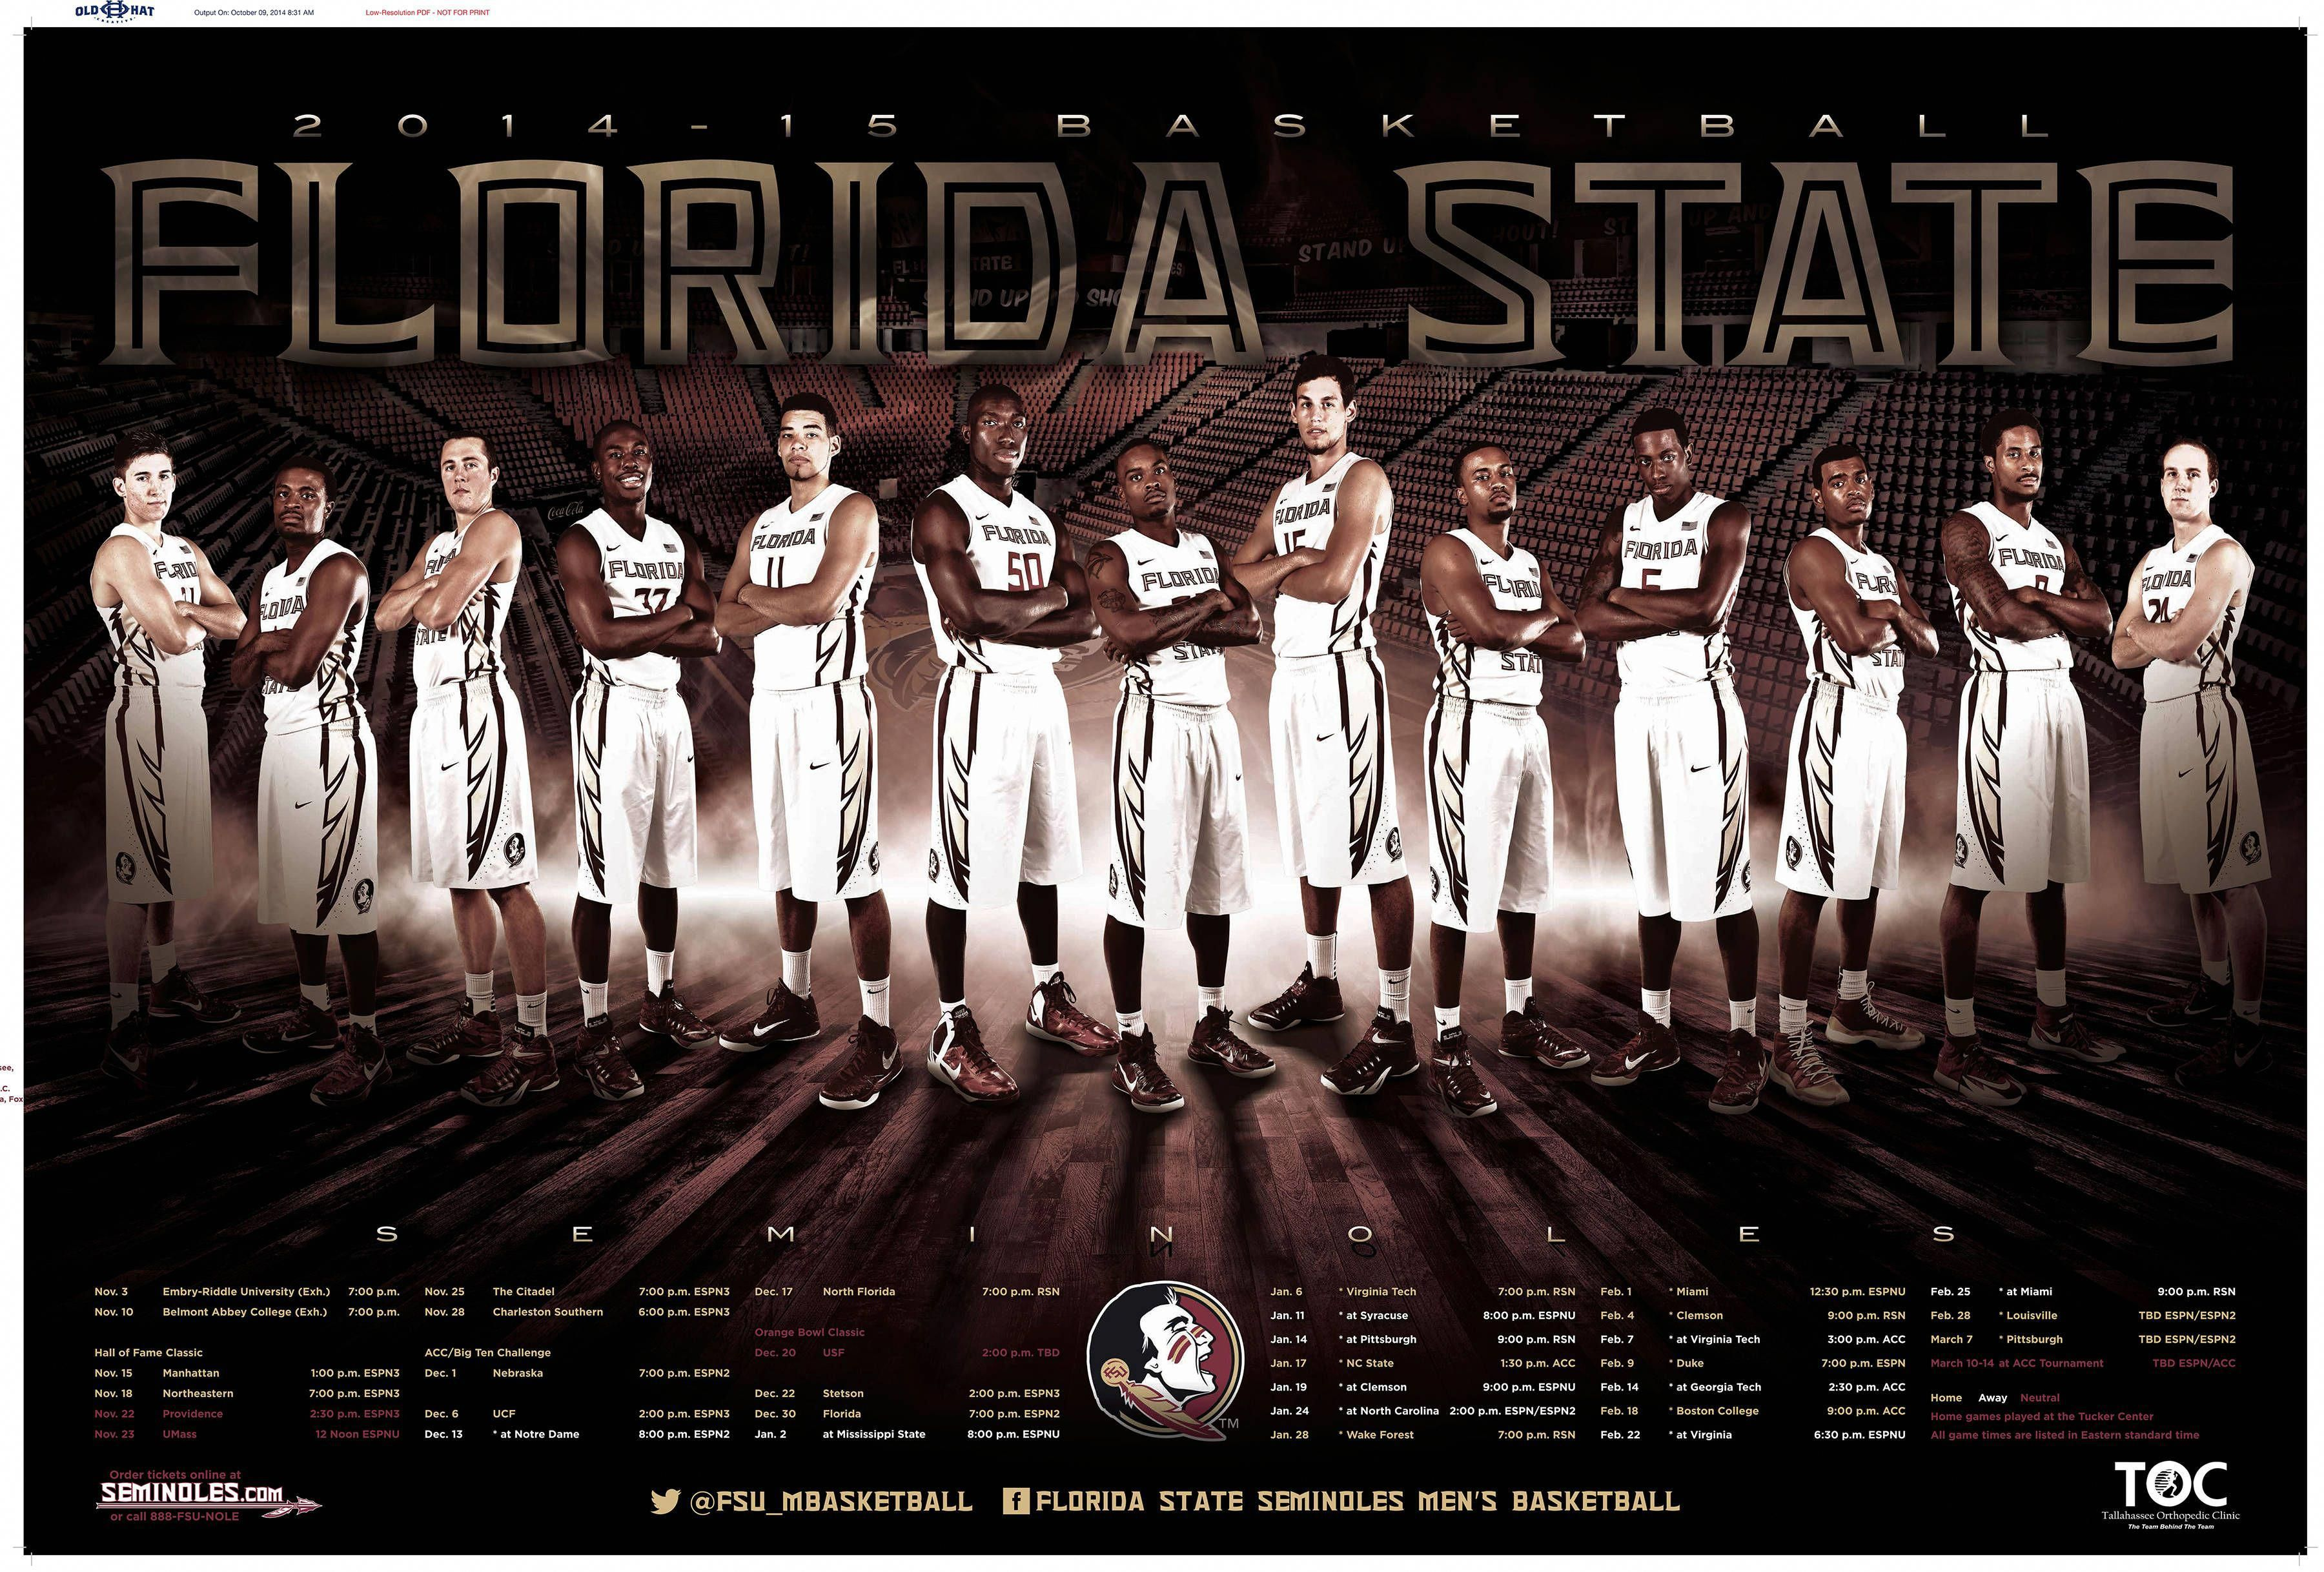 Basketball Team Poster Google Search Basketballpictures Basketball Team Pictures Basketball Posters Sports Posters Basketball